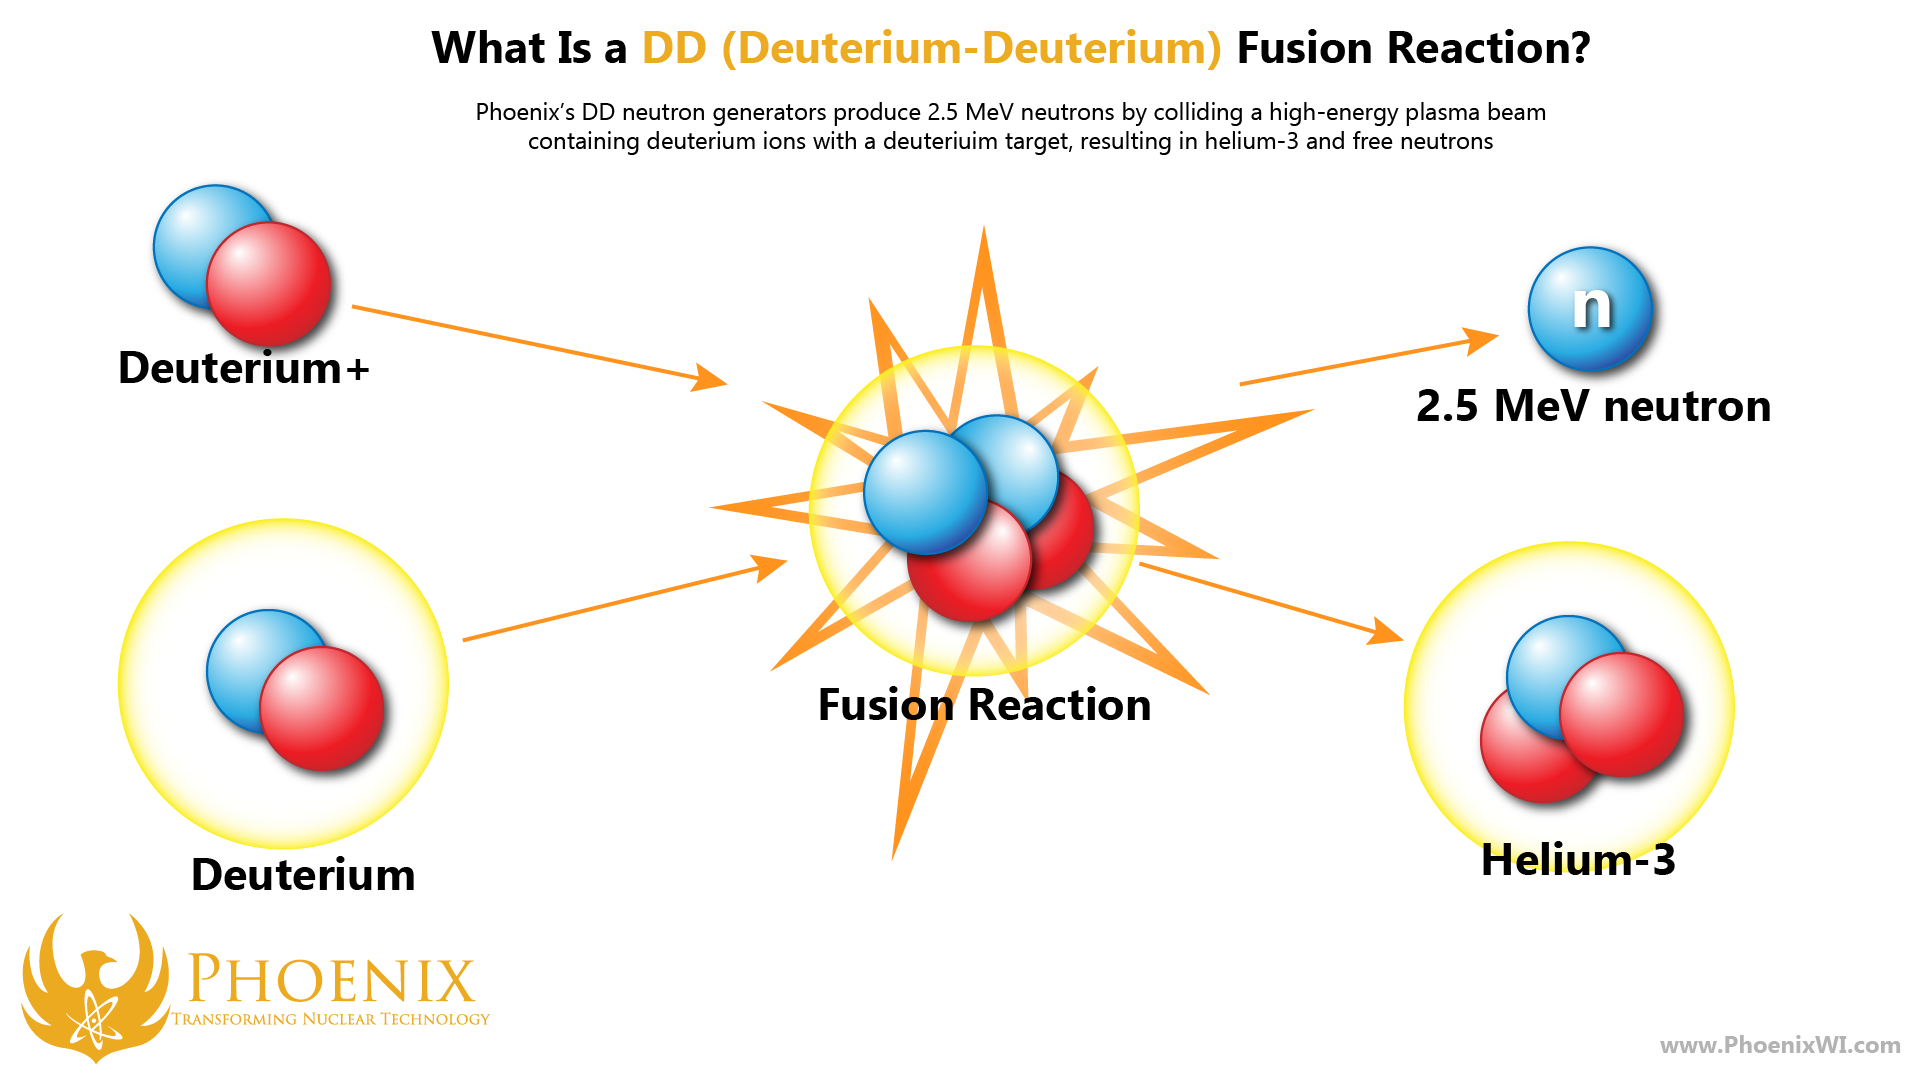 Phoenix's DD fusion reaction